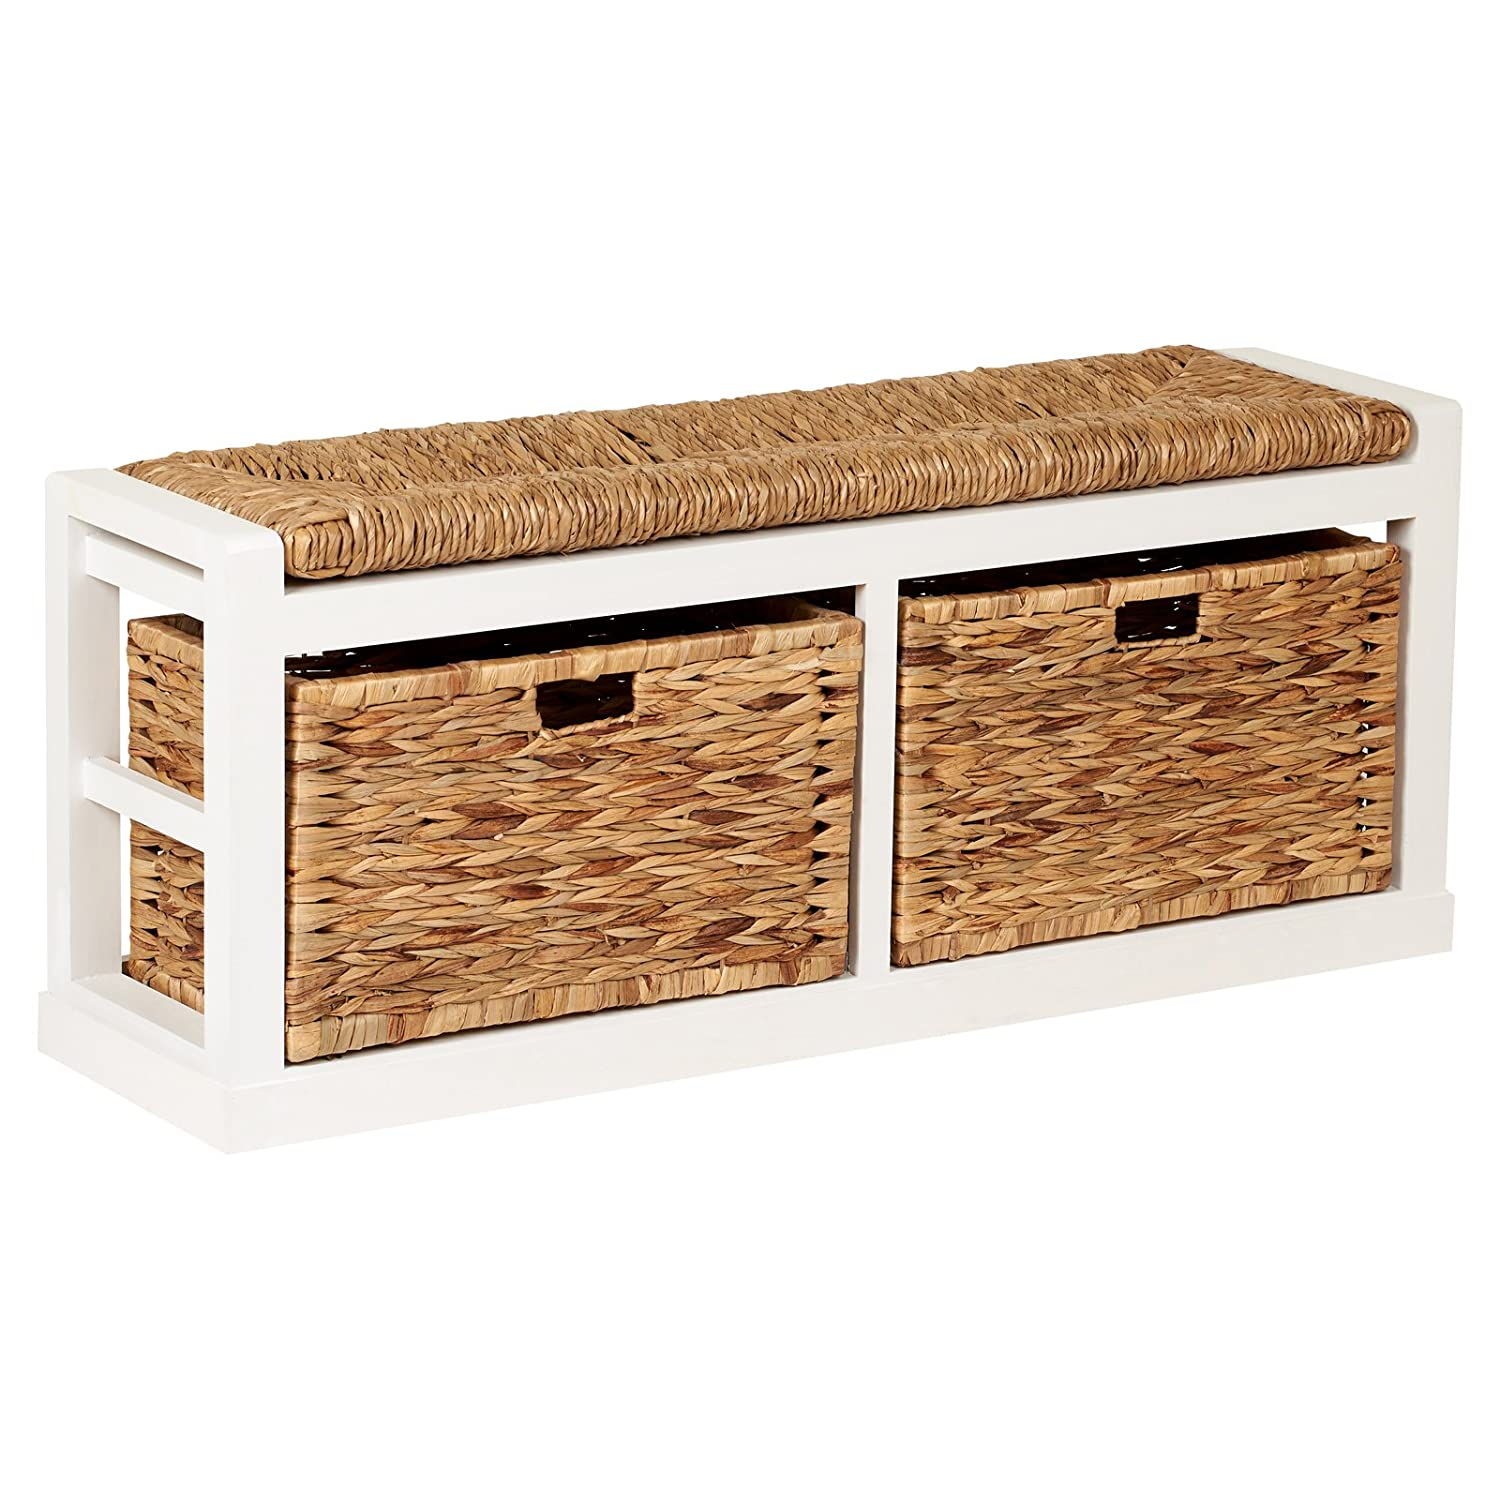 Pleasant Hartleys Extra Wide 2 Drawer Storage Bench With Wicker Cushion Baskets Onthecornerstone Fun Painted Chair Ideas Images Onthecornerstoneorg